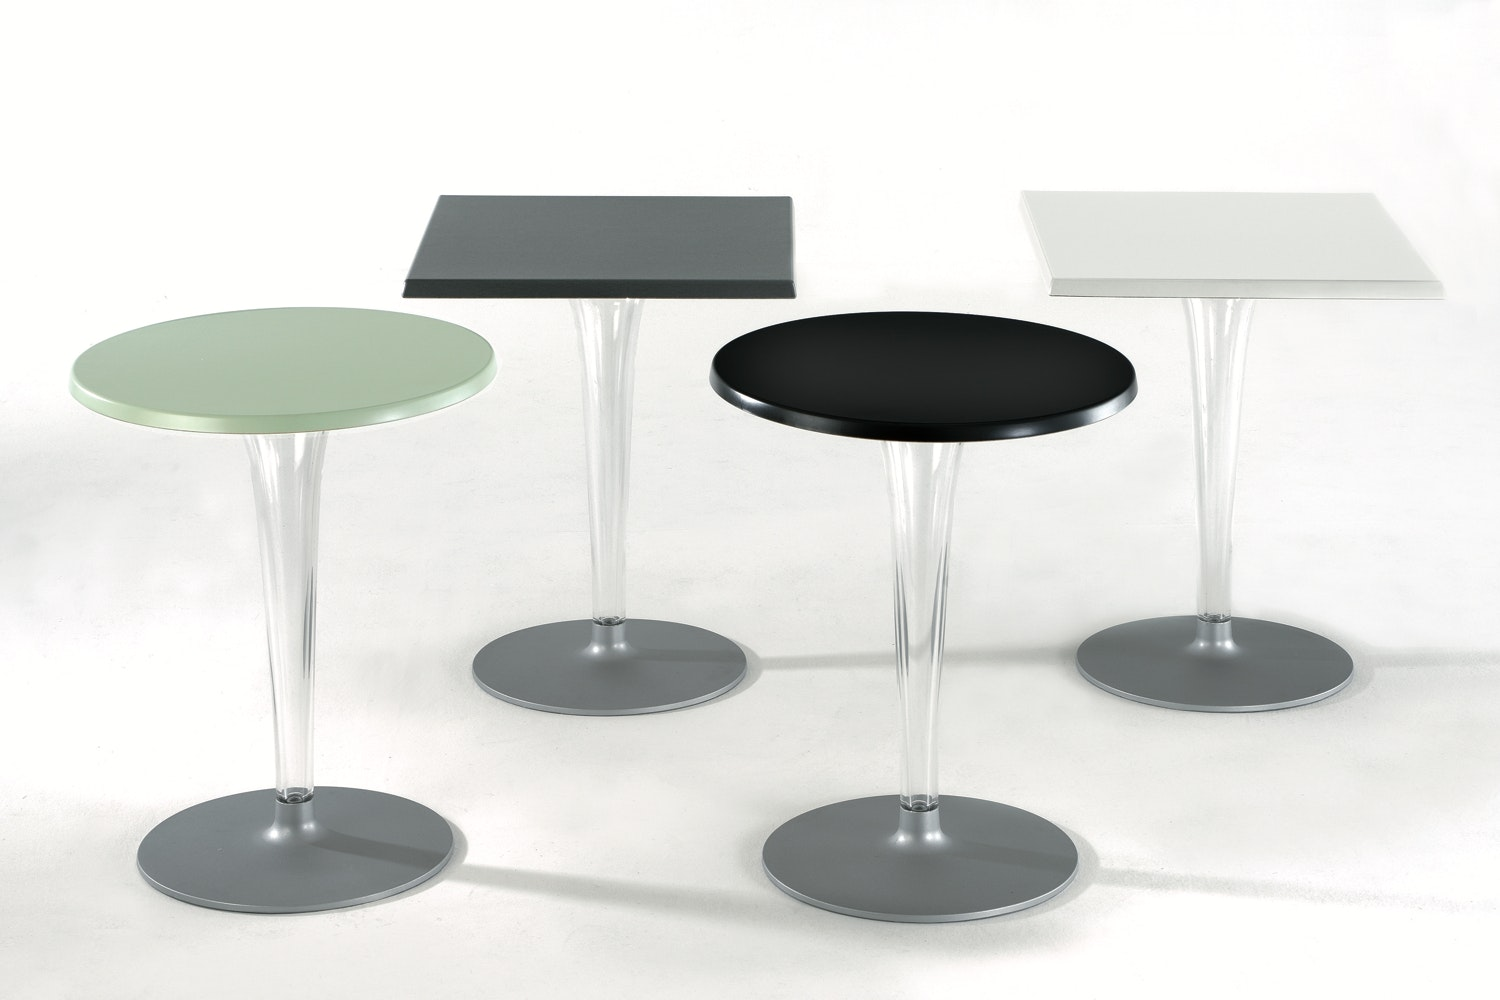 TopTop Outdoor Table with Large Round Top by Philippe Starck with Eugeni Quitllet for Kartell